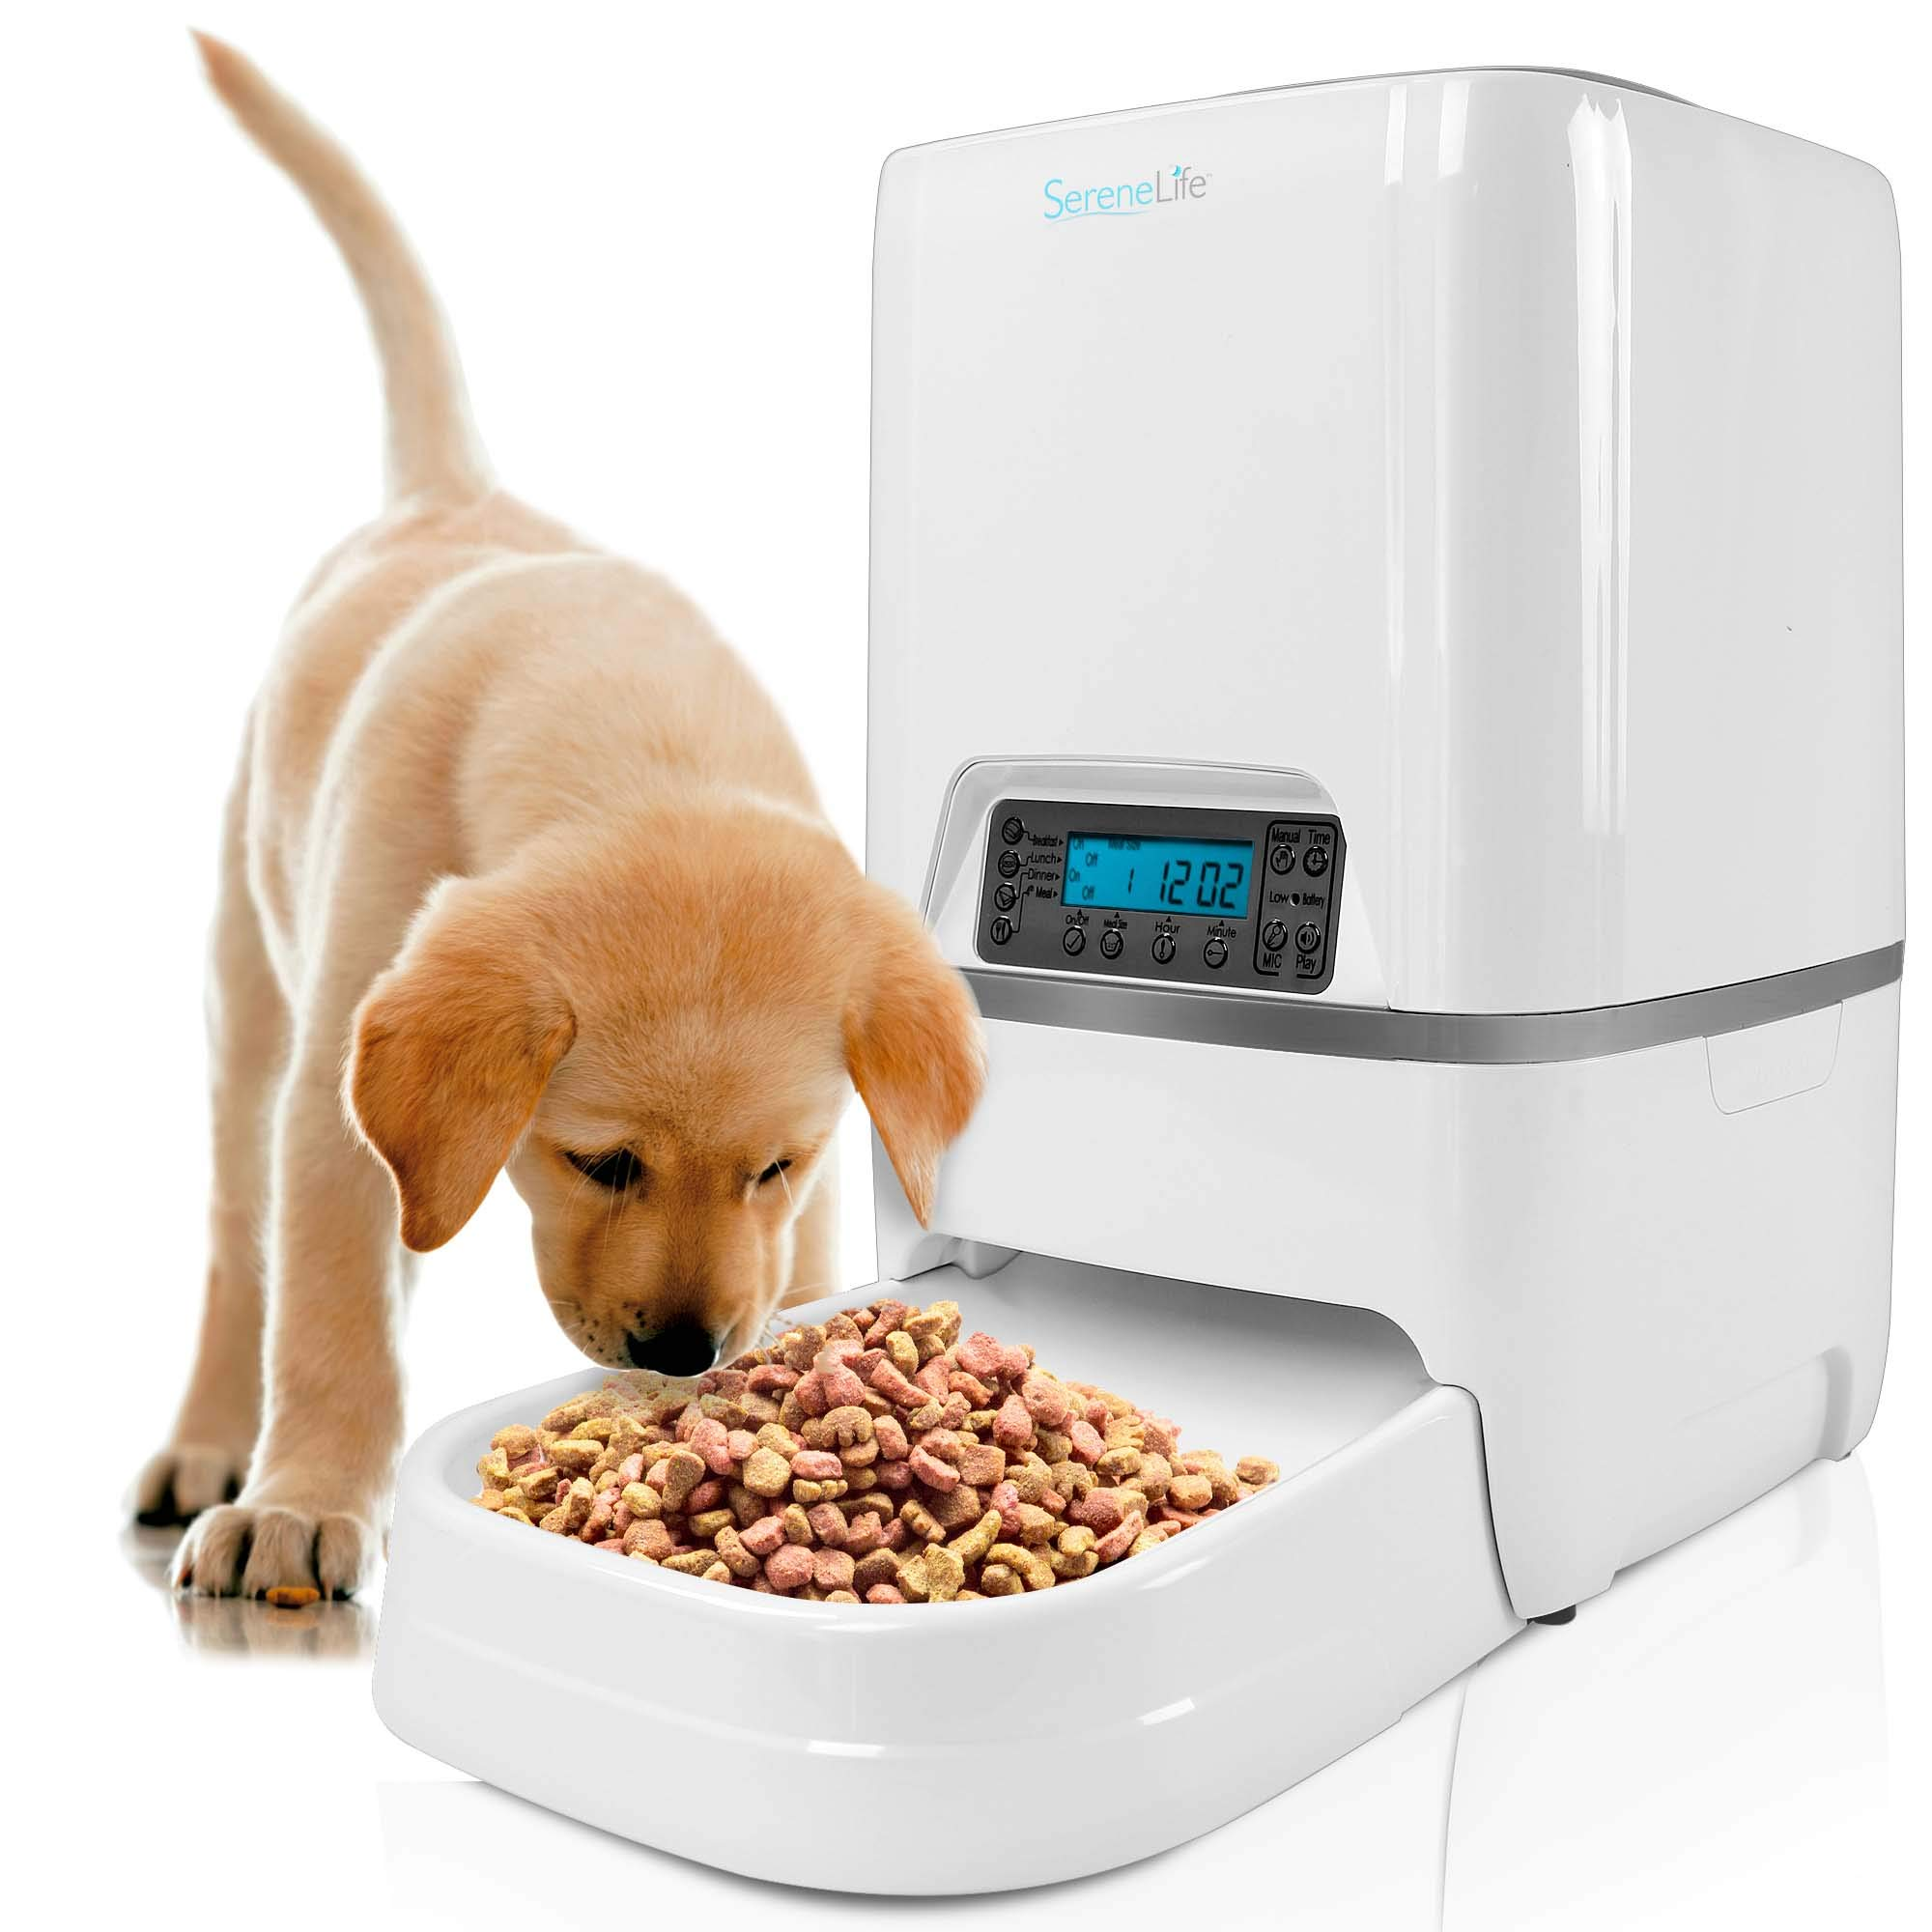 SereneLife Automatic Pet Feeder - Electronic Digital Dry Food Storage Meal Dispenser with Built-in Microphone, Voice Recorder, and Timer Programmable to Feed Cat and Dog and Small Animals SLAPF18 by SereneLife